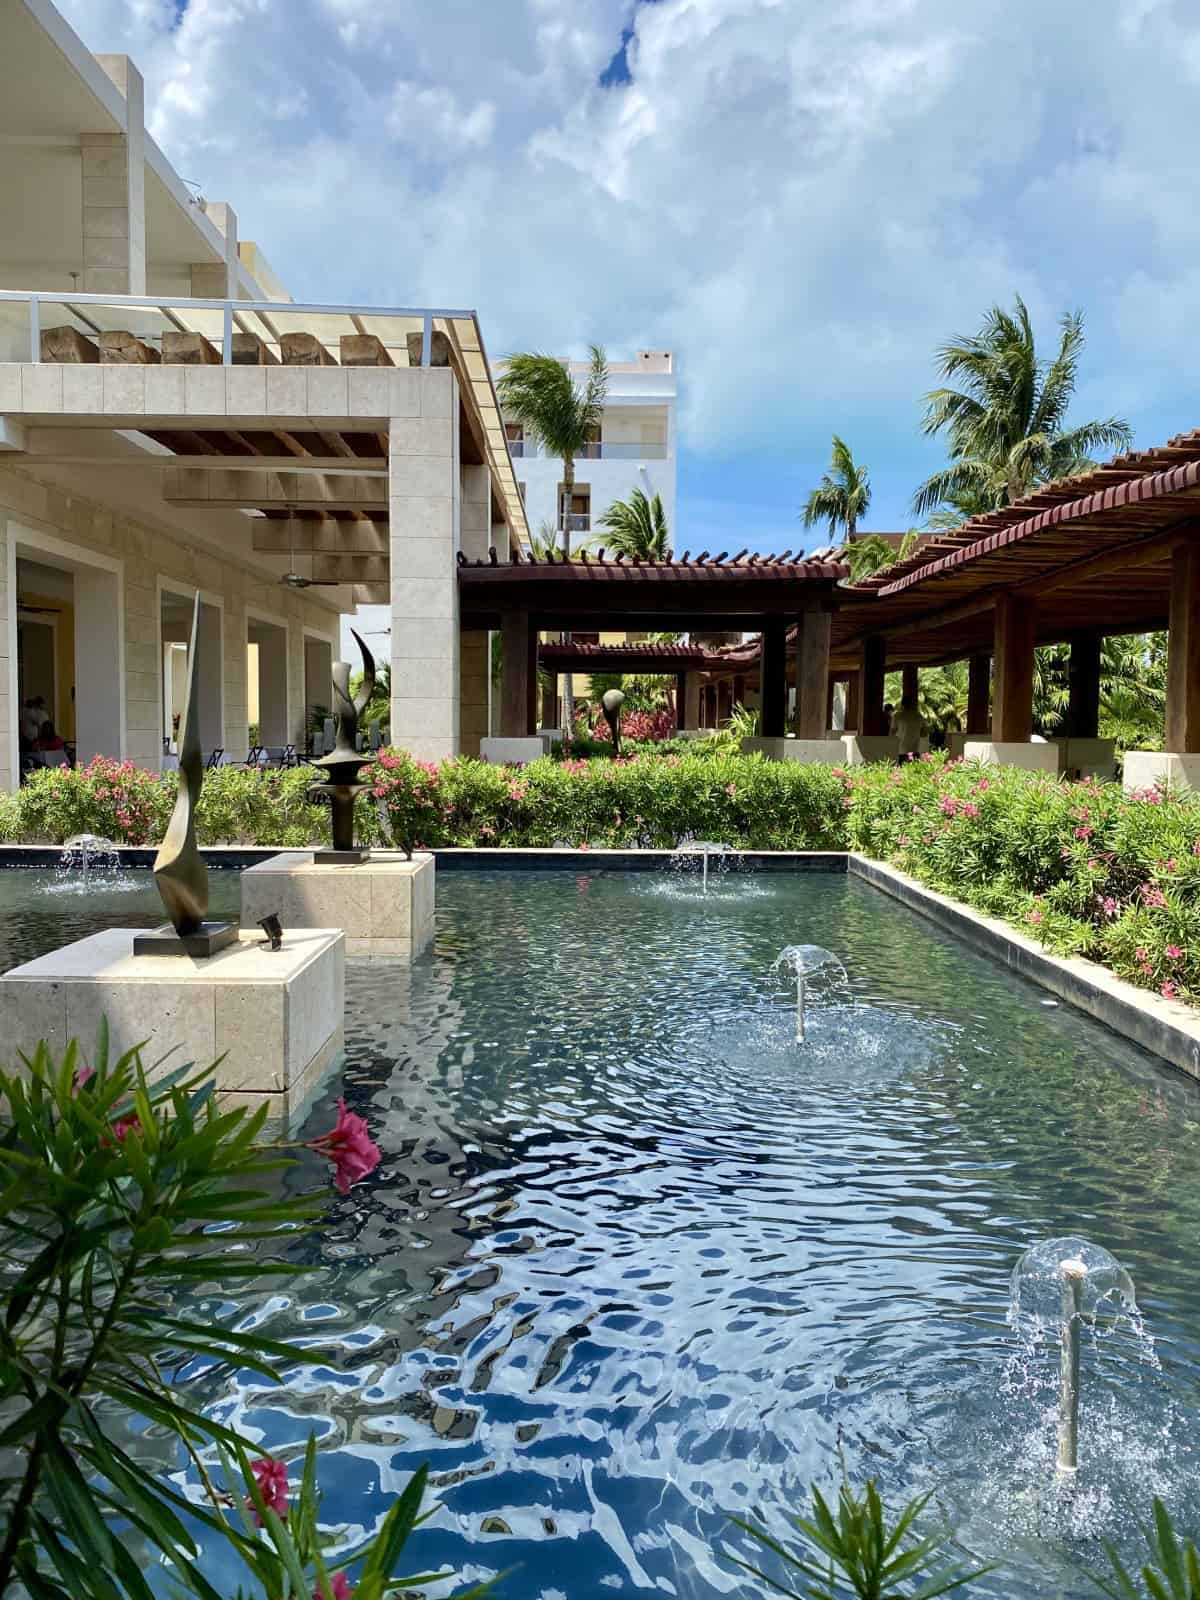 A detailed Excellence Playa Mujeres review, including the beautiful resort grounds!